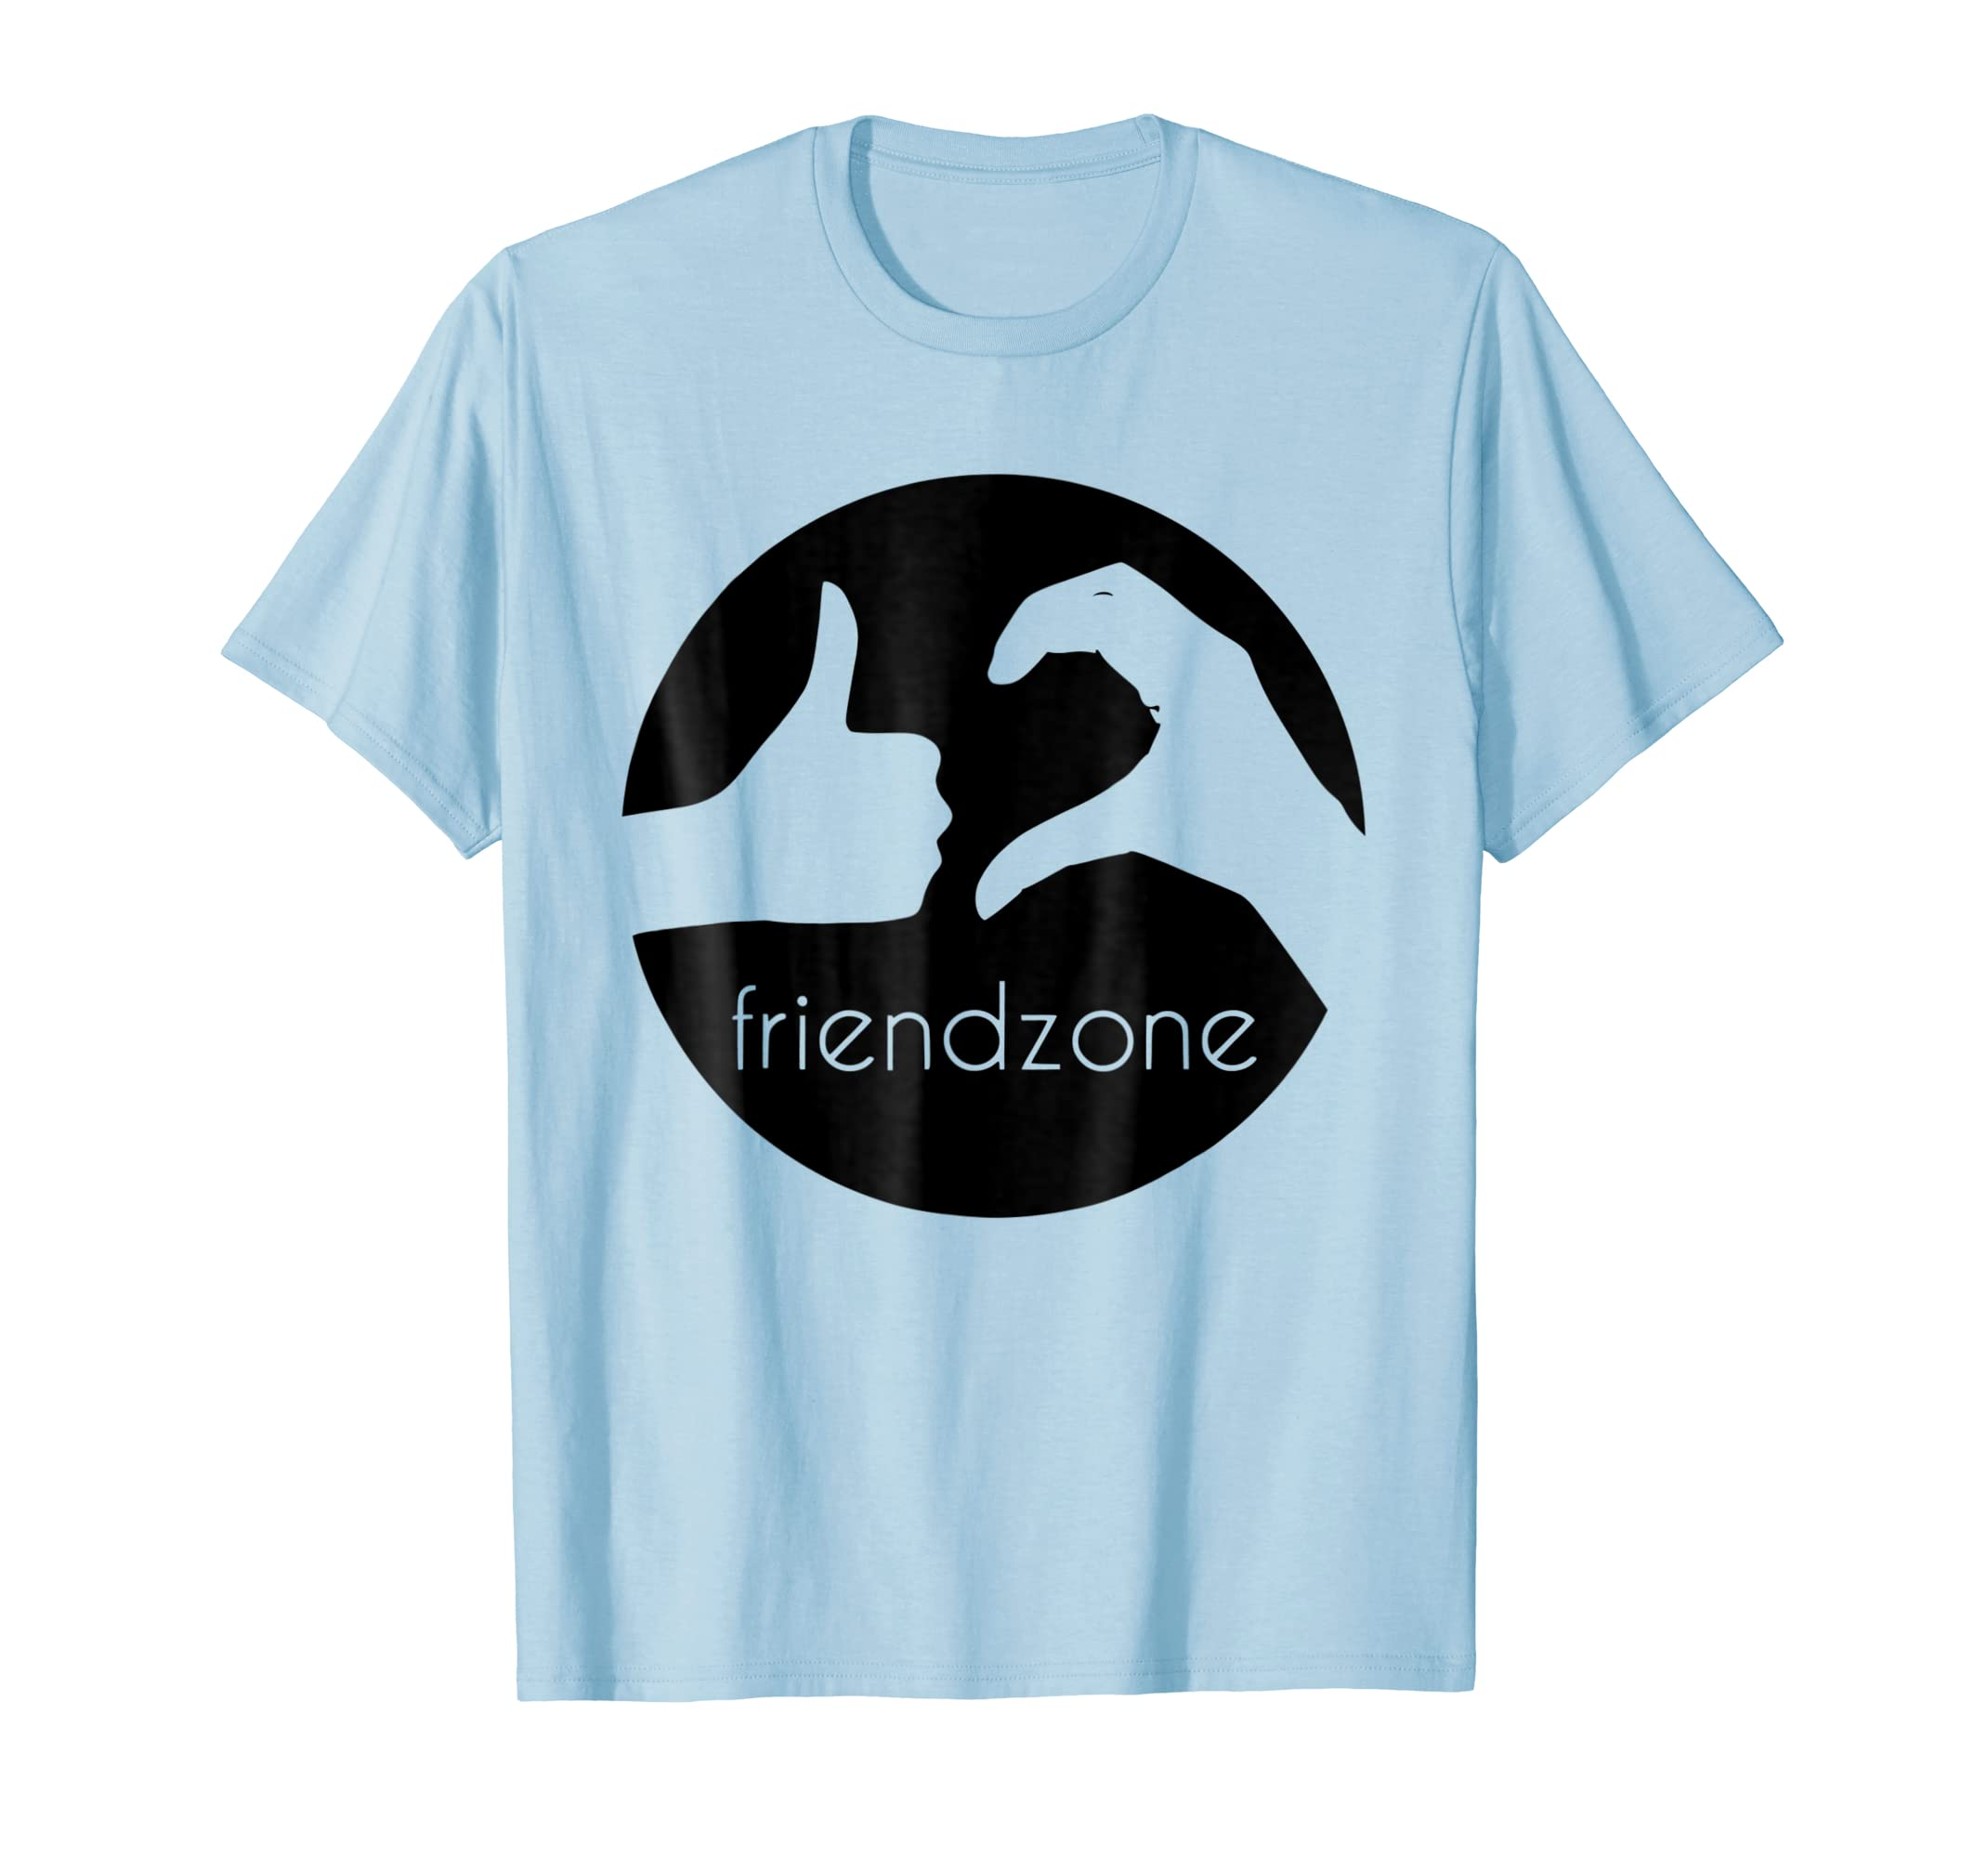 Friendzone T Shirt-4LVS